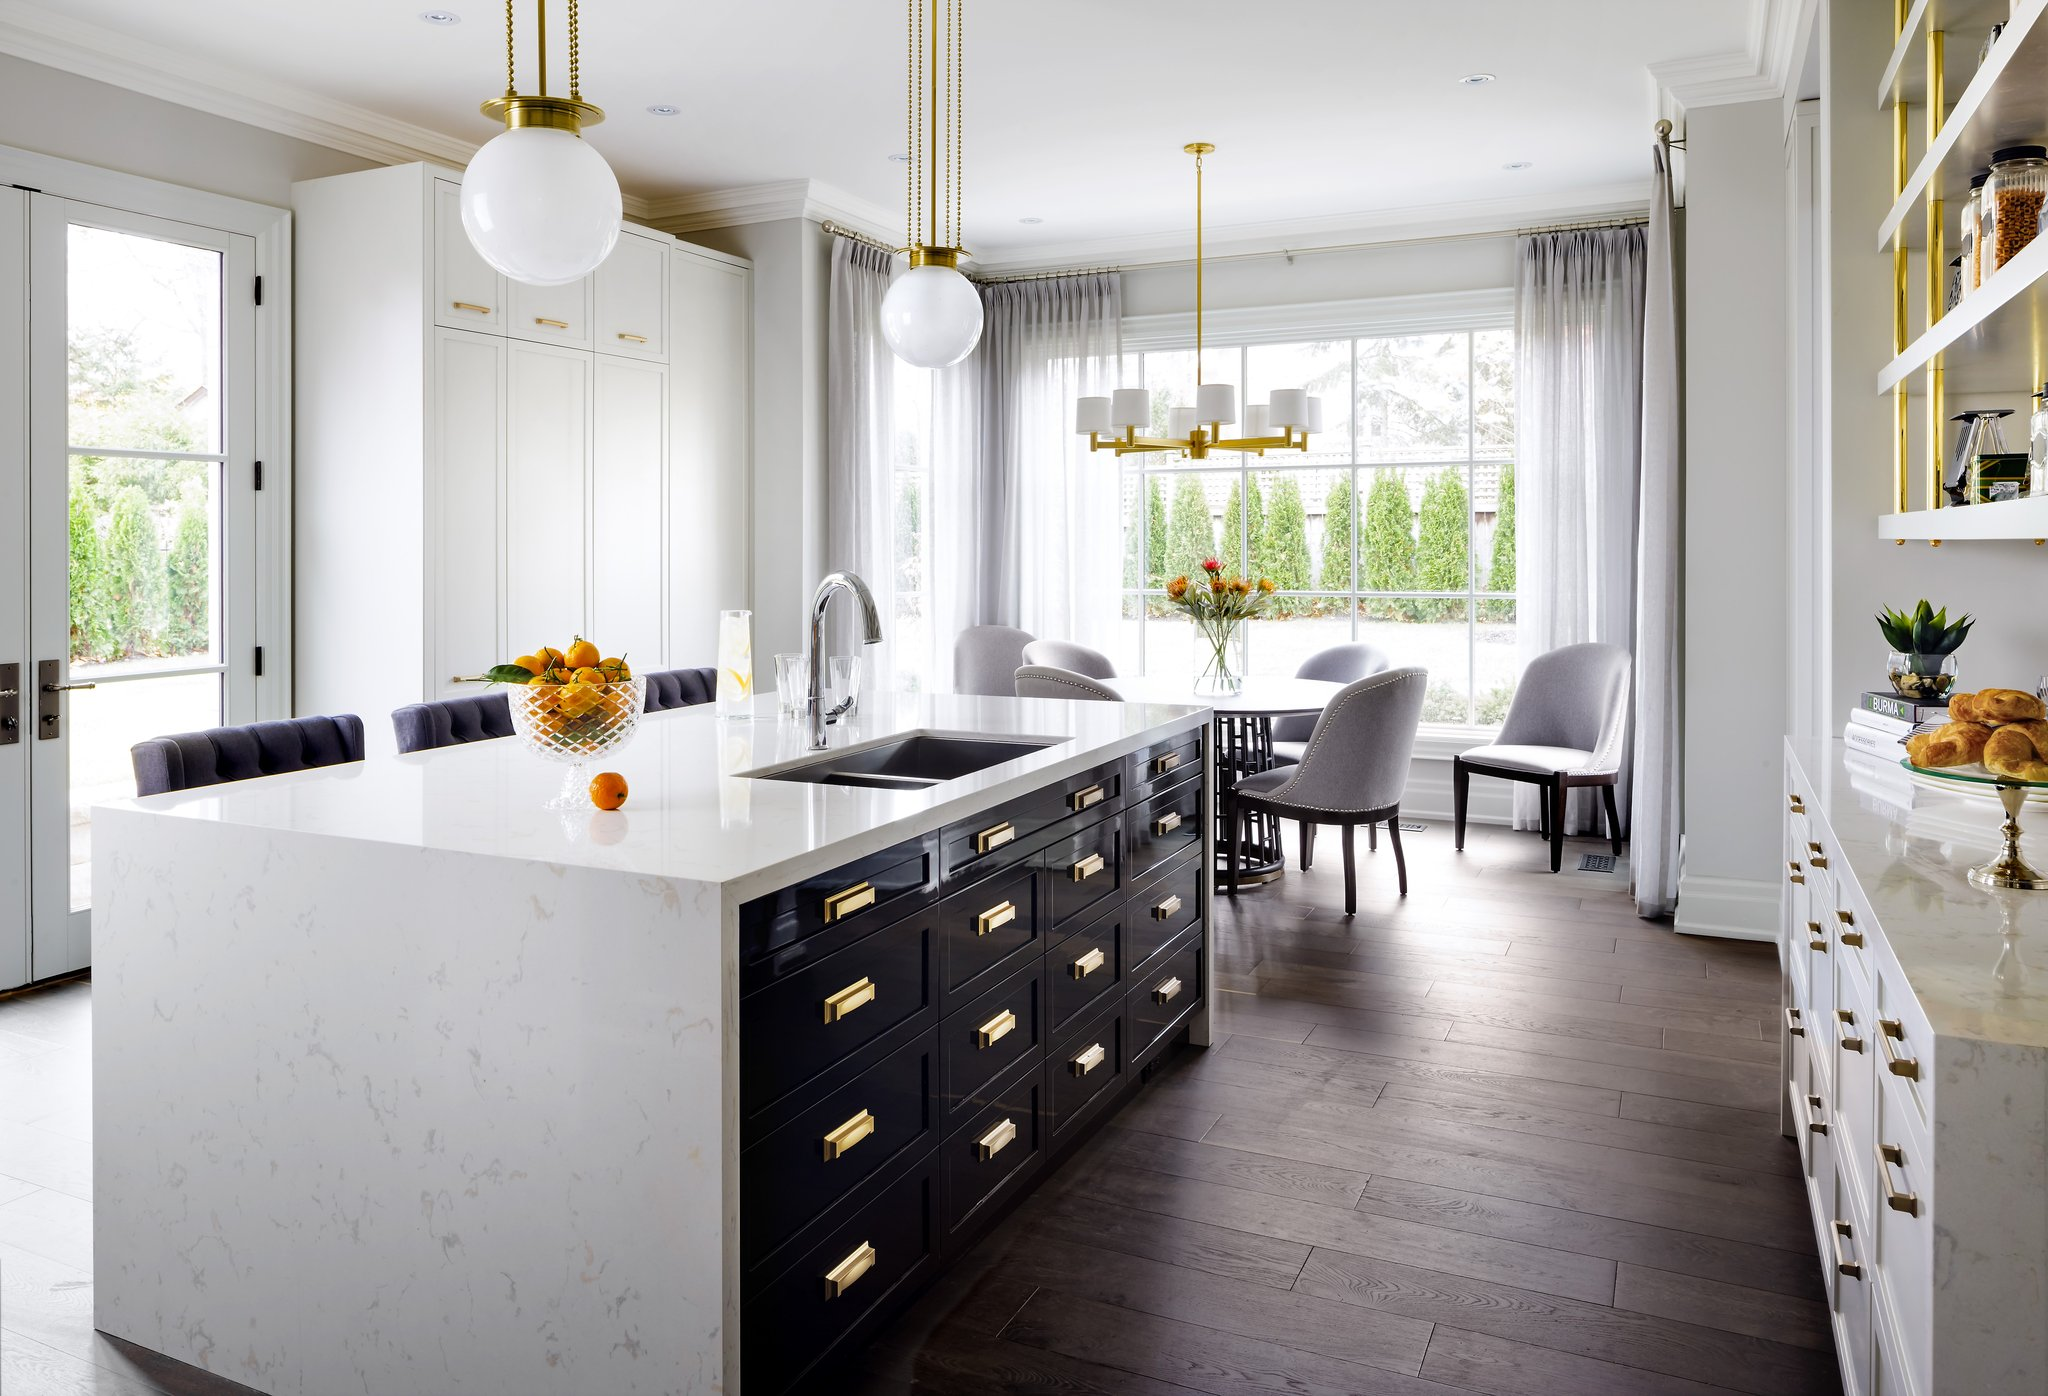 photos countertops finding wood budget unique also countertop a ideas on in kitchen awesome